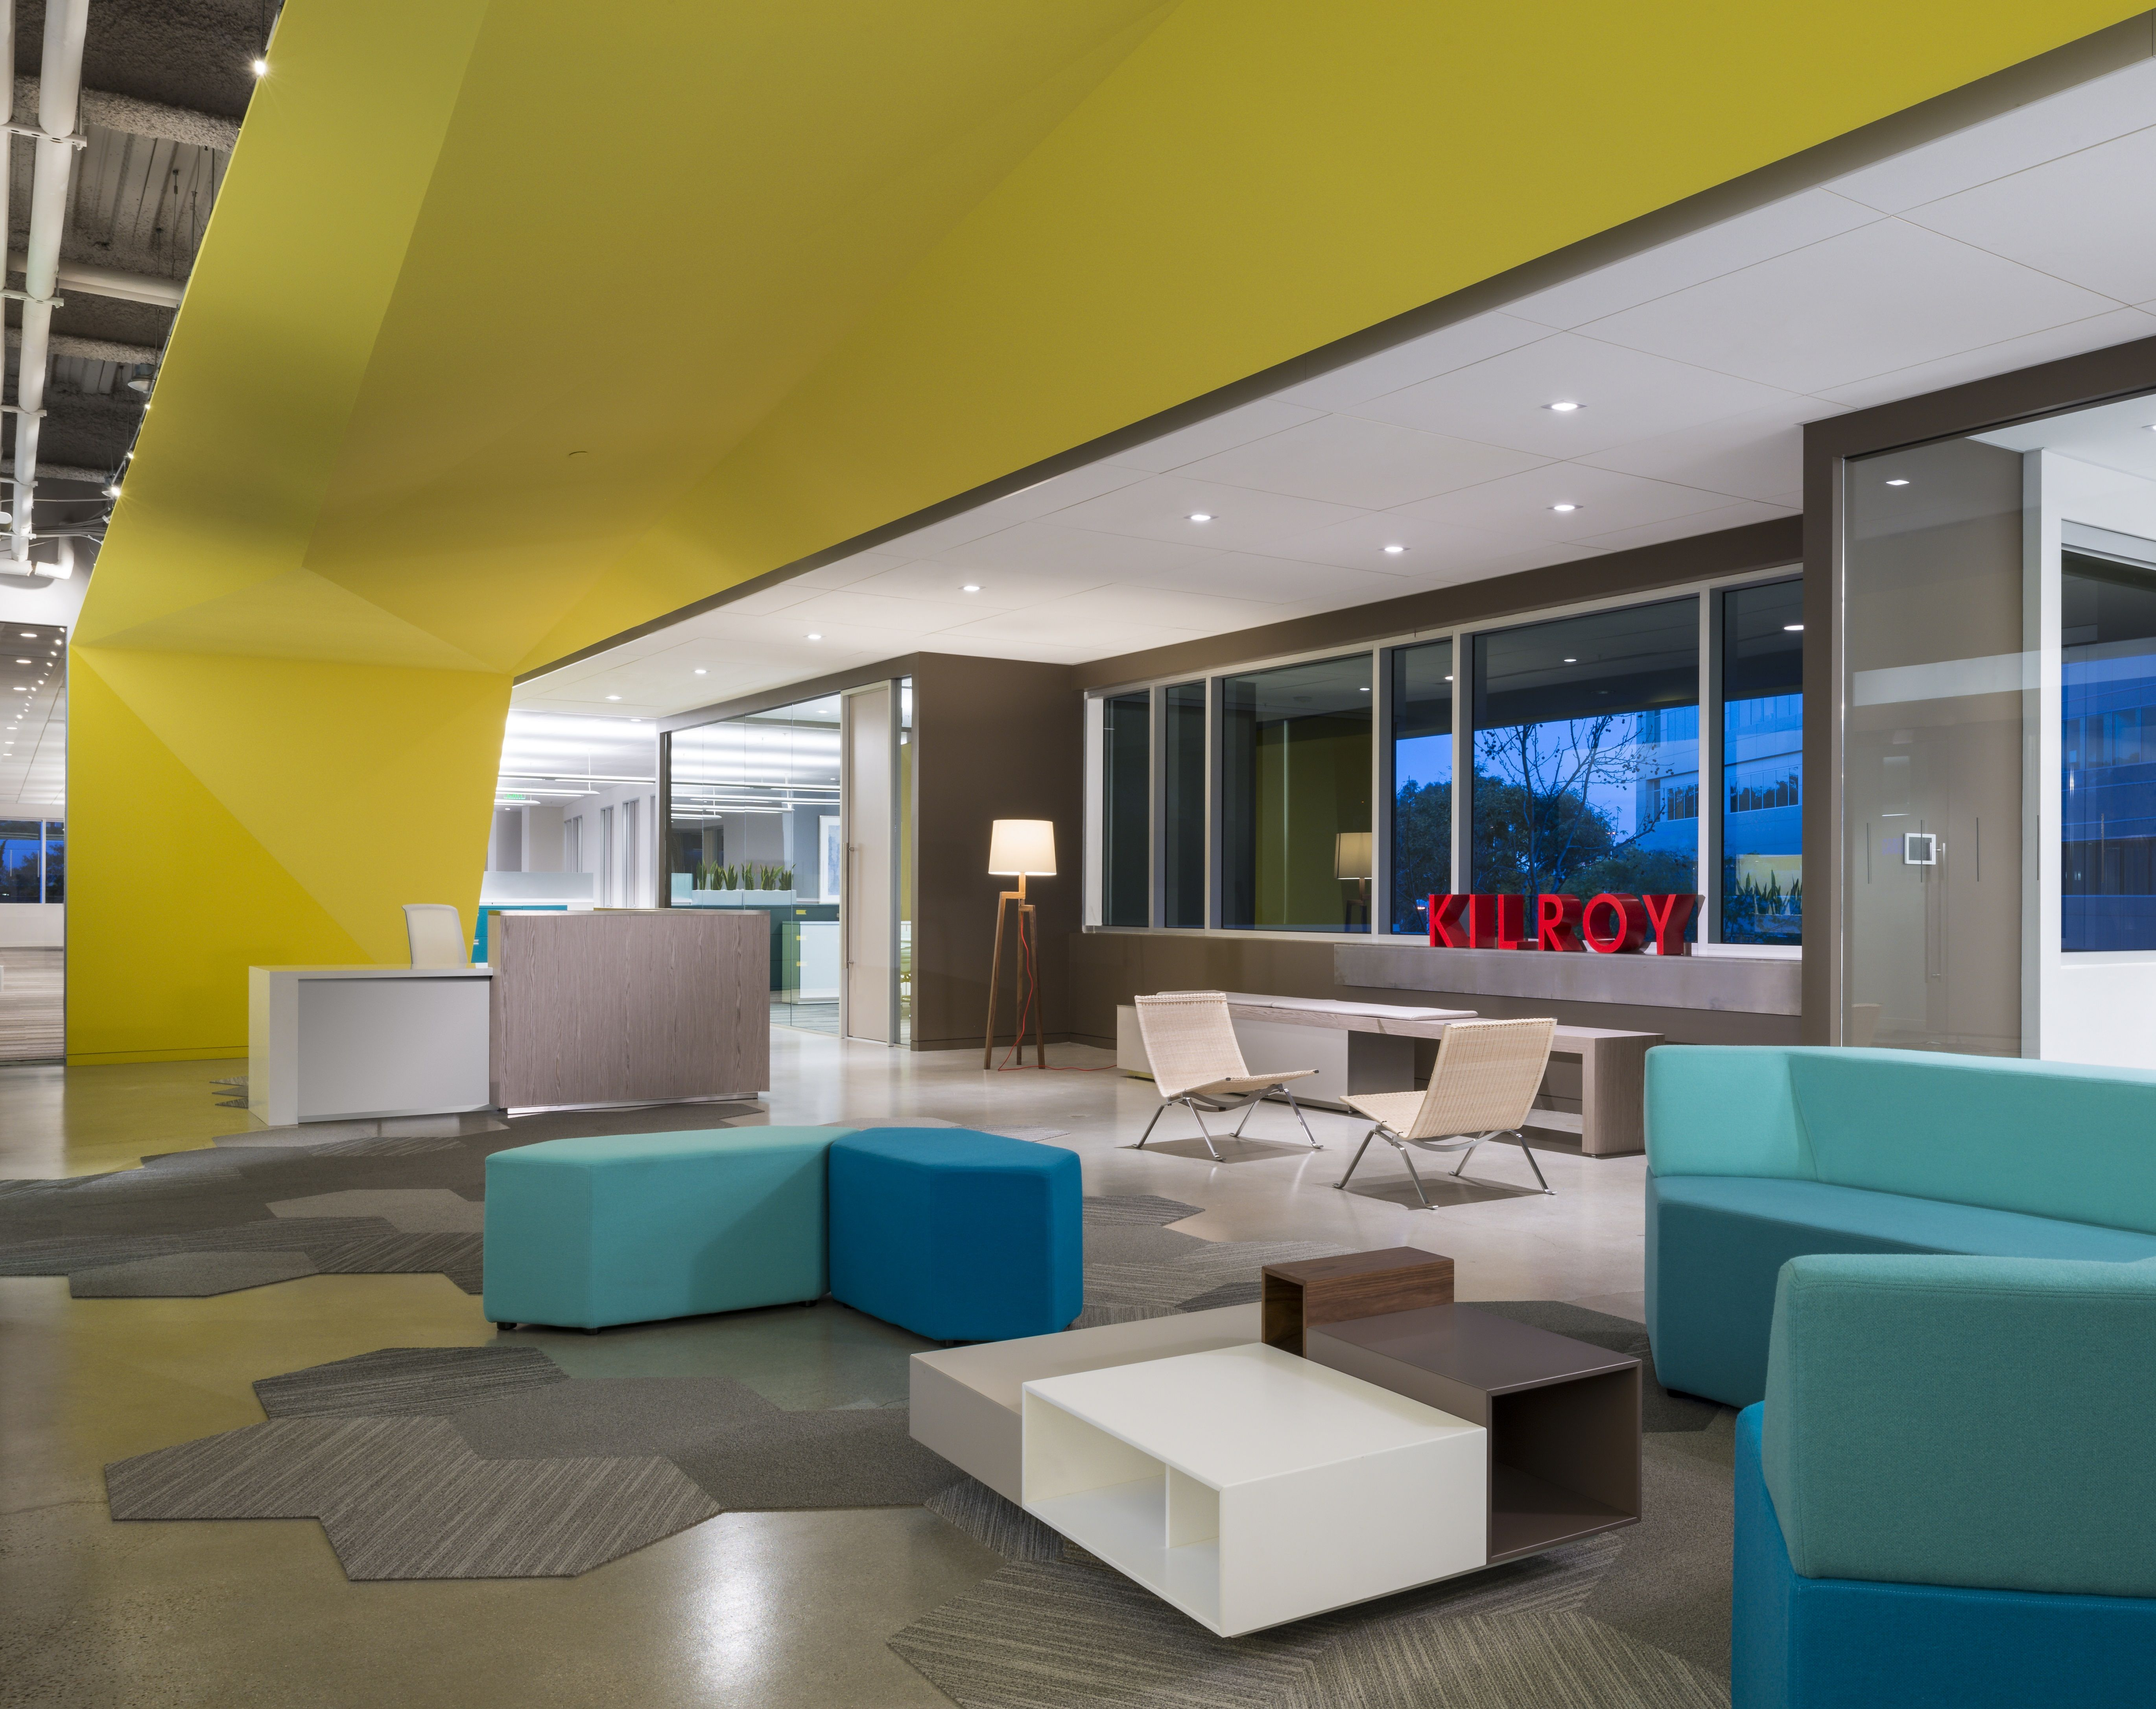 Kilroy Realty Leasing Office - in Irvine, CA | Creative Flooring ...